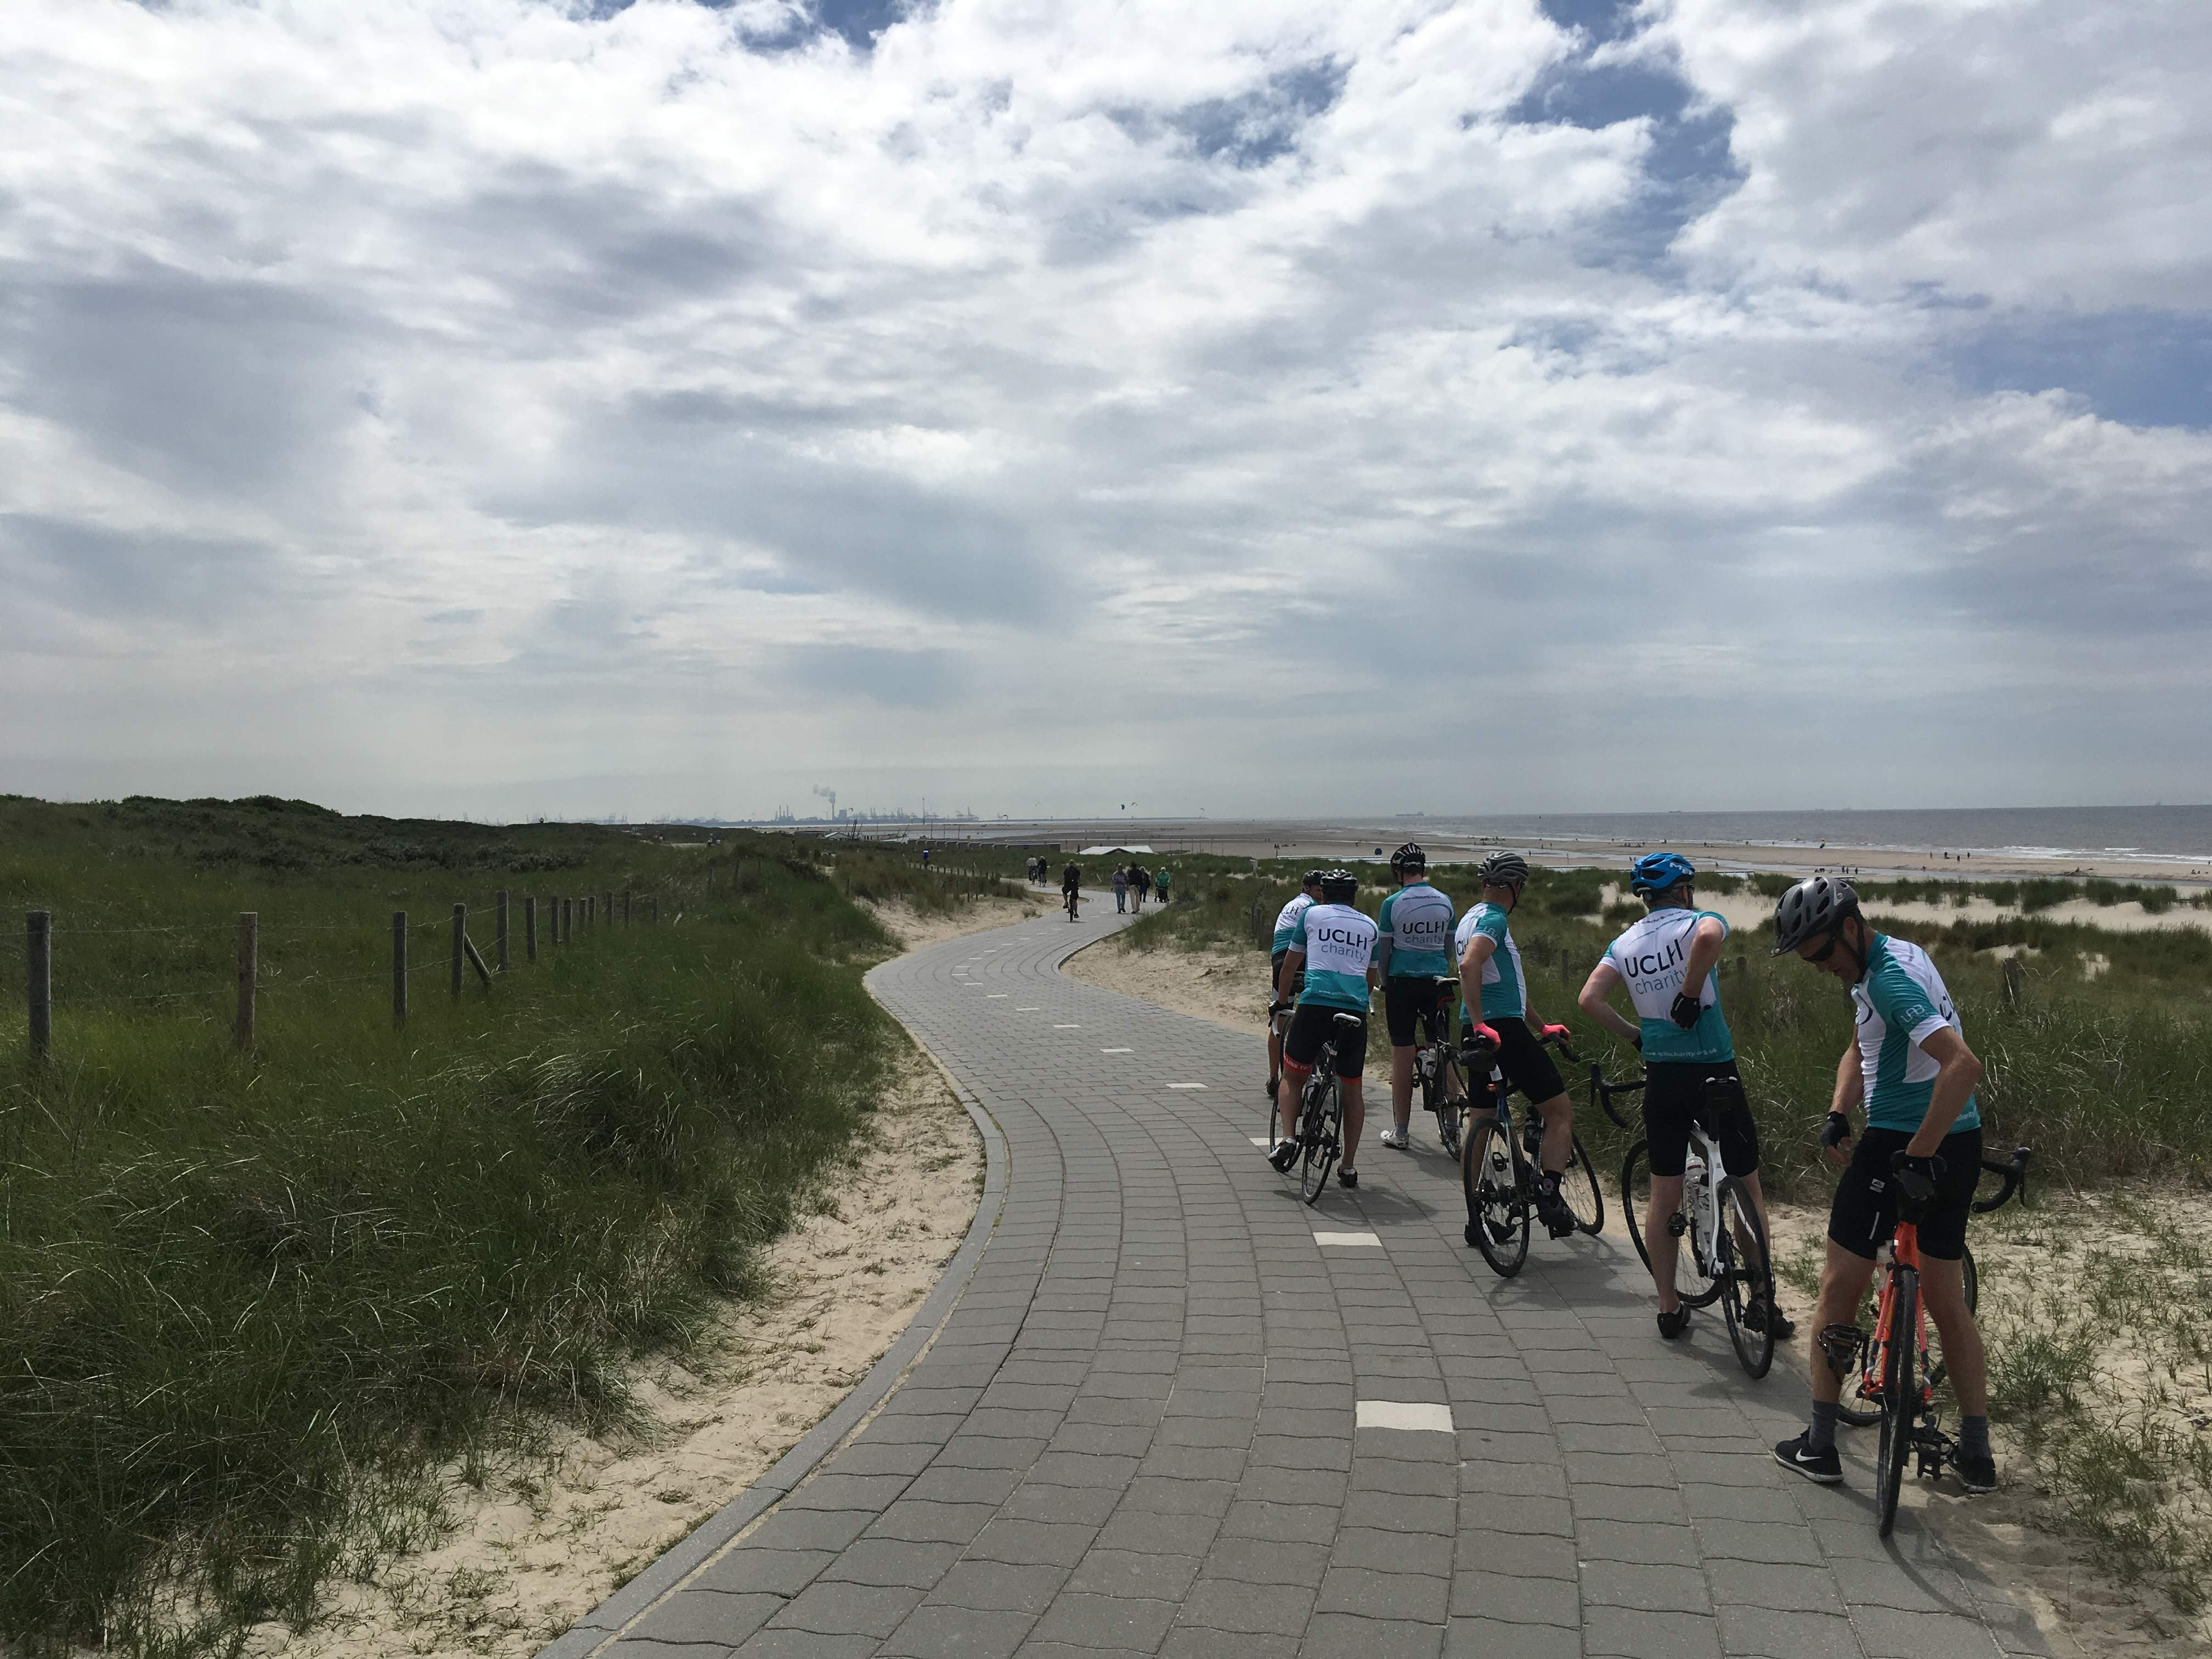 Day 1 - Arriving at the hook of holland